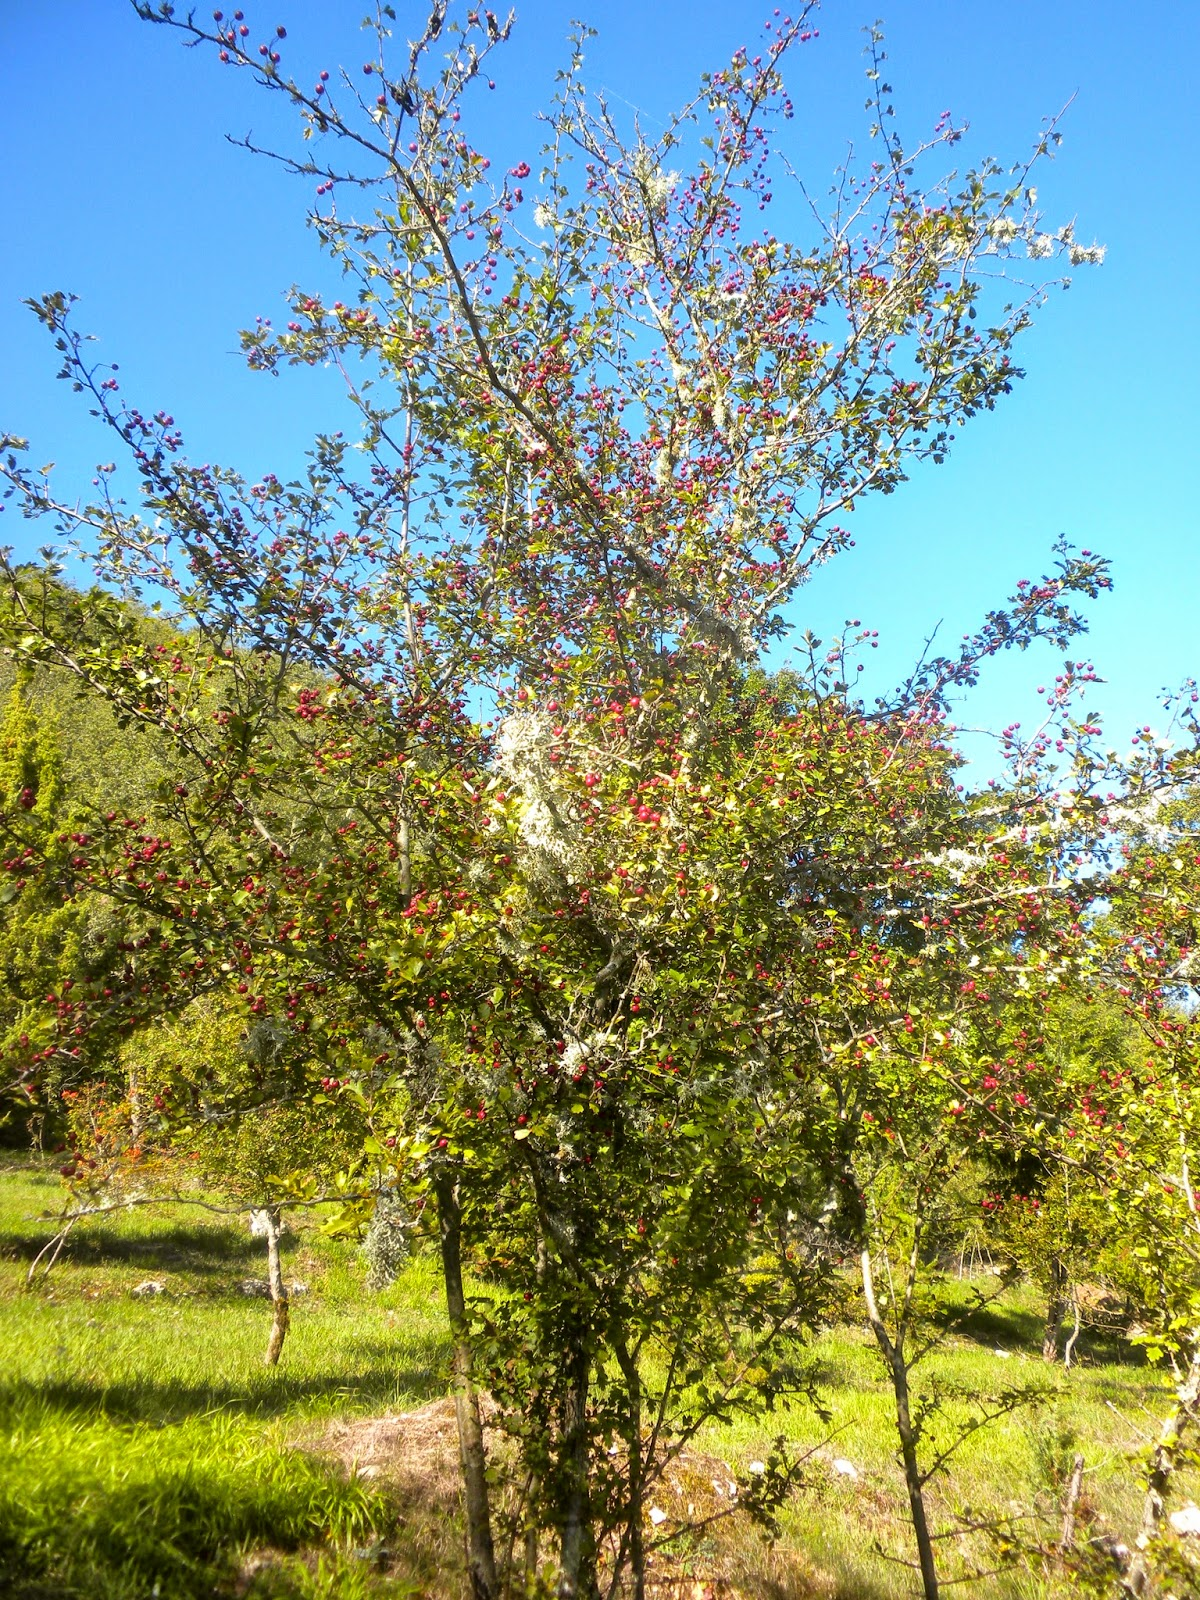 From A Tuscan Hillside The Thorn Tree And Its Associations